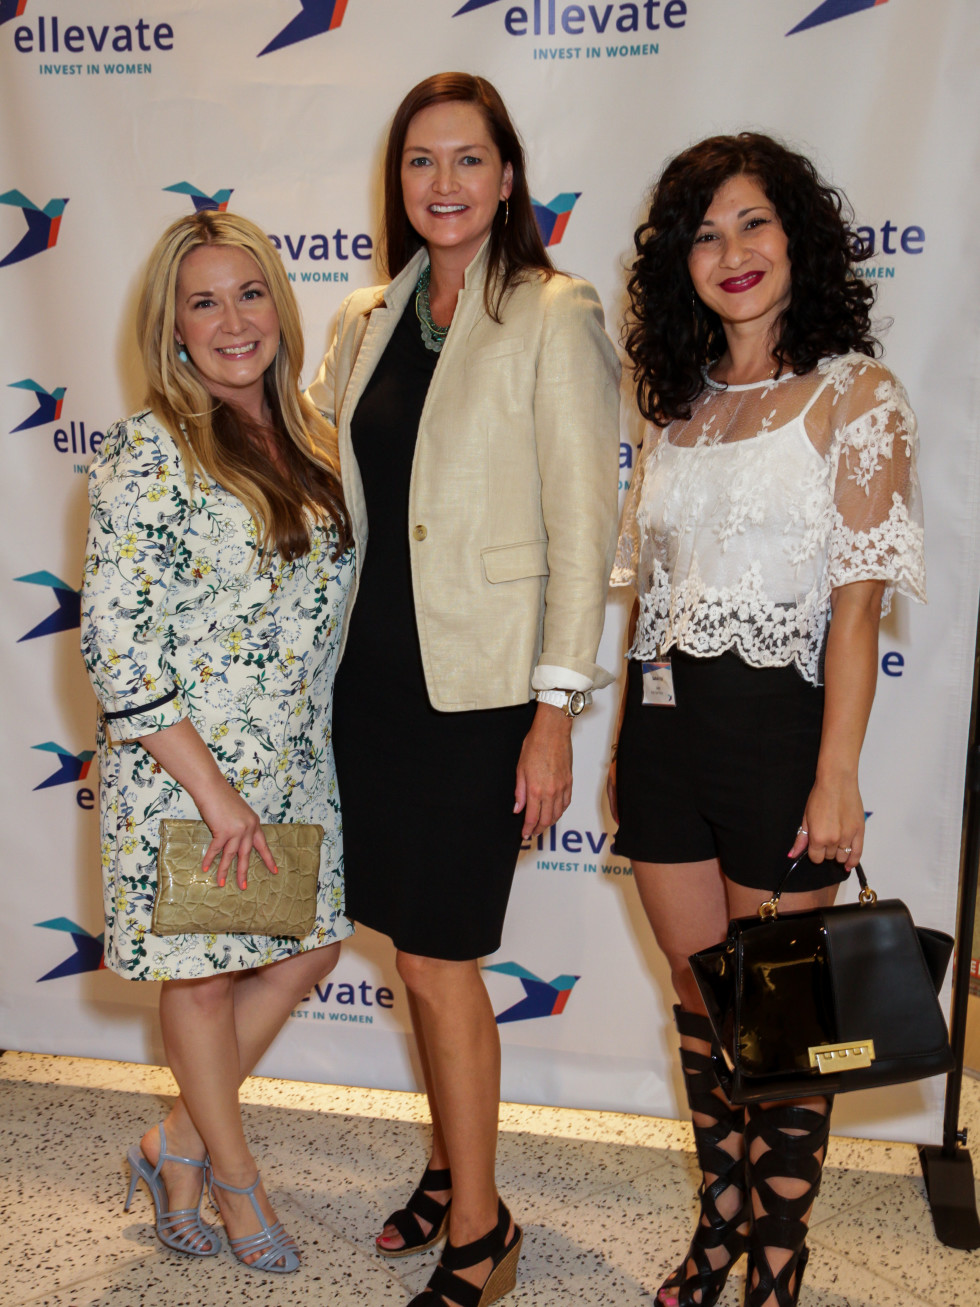 Houston, Ellevate event at Tootsies, August 2015, Misti Pace Krahl, Lisa Pounds, Sahar Paz